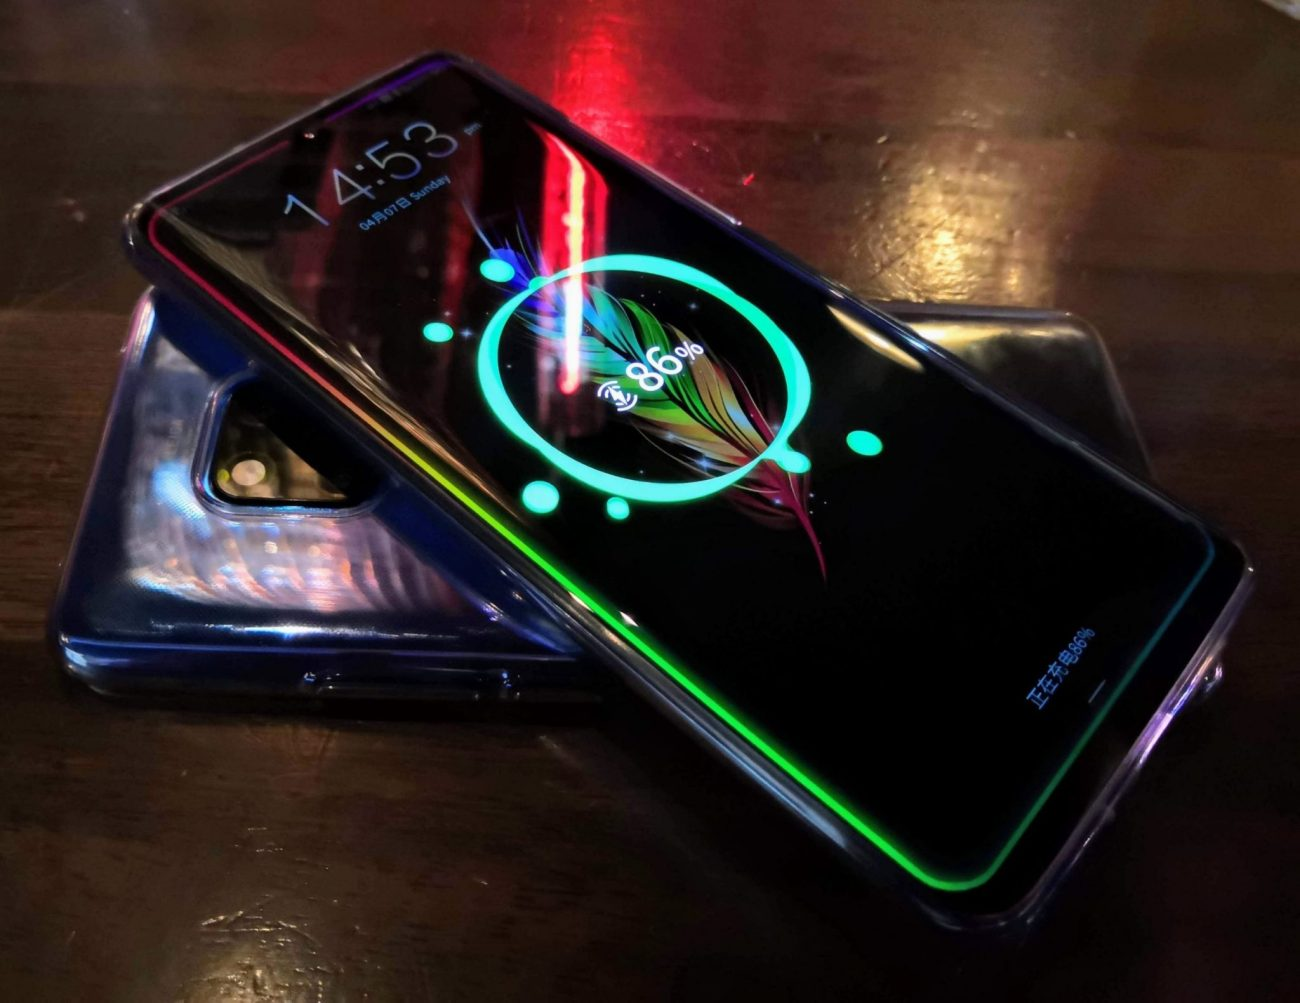 Mate 20 Pro charging a P30 Pro because, well, you can!